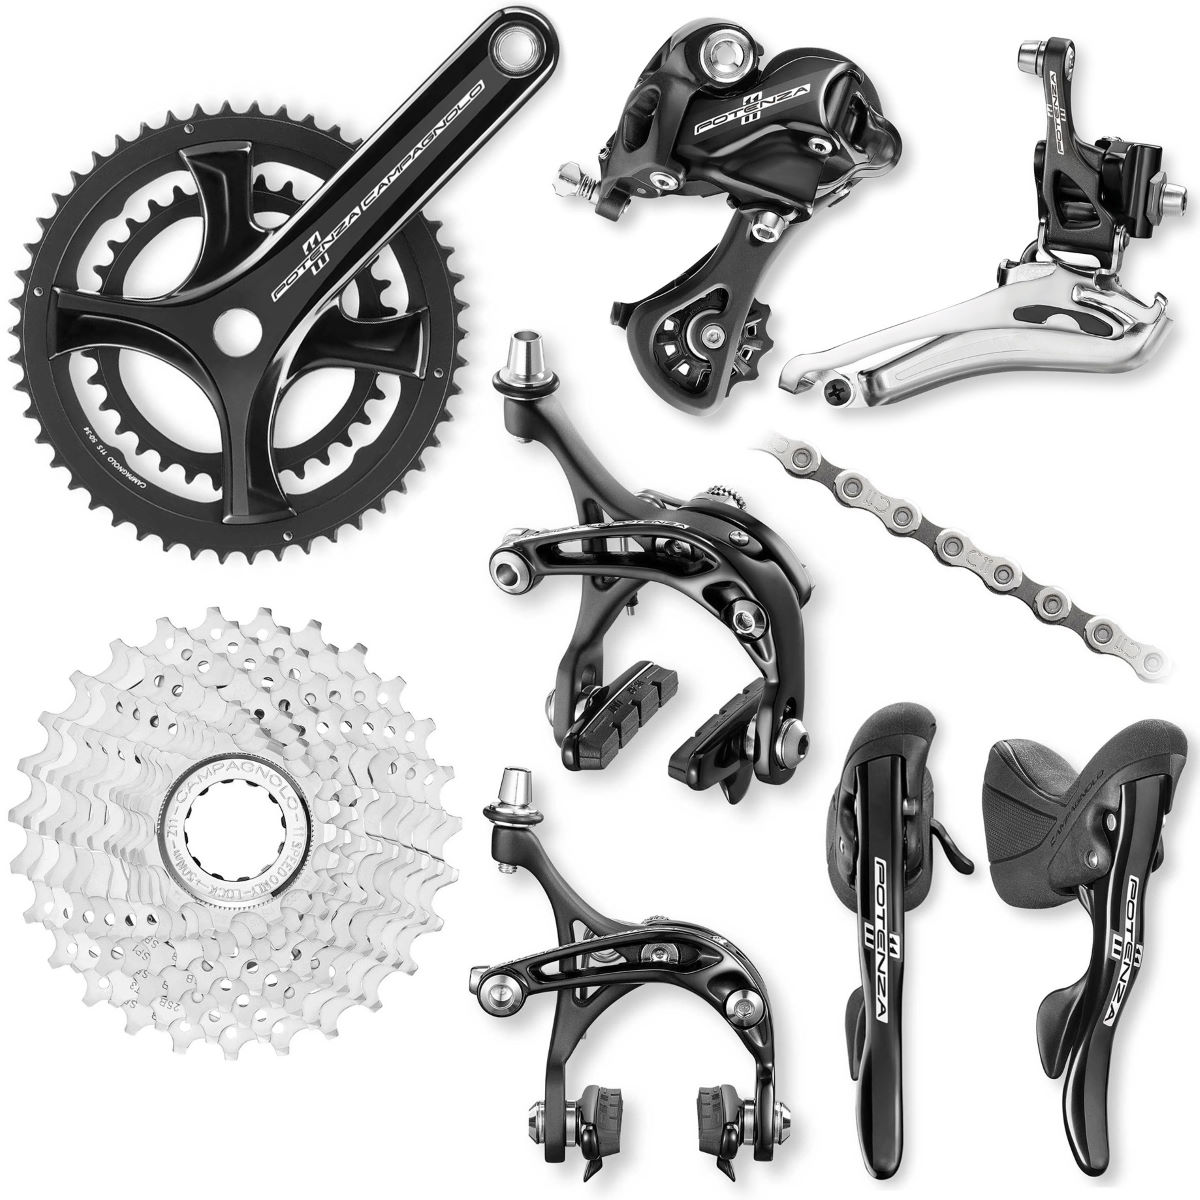 Campagnolo potenza 11 speed groupset groupsets and build kits black 2016 9006011706